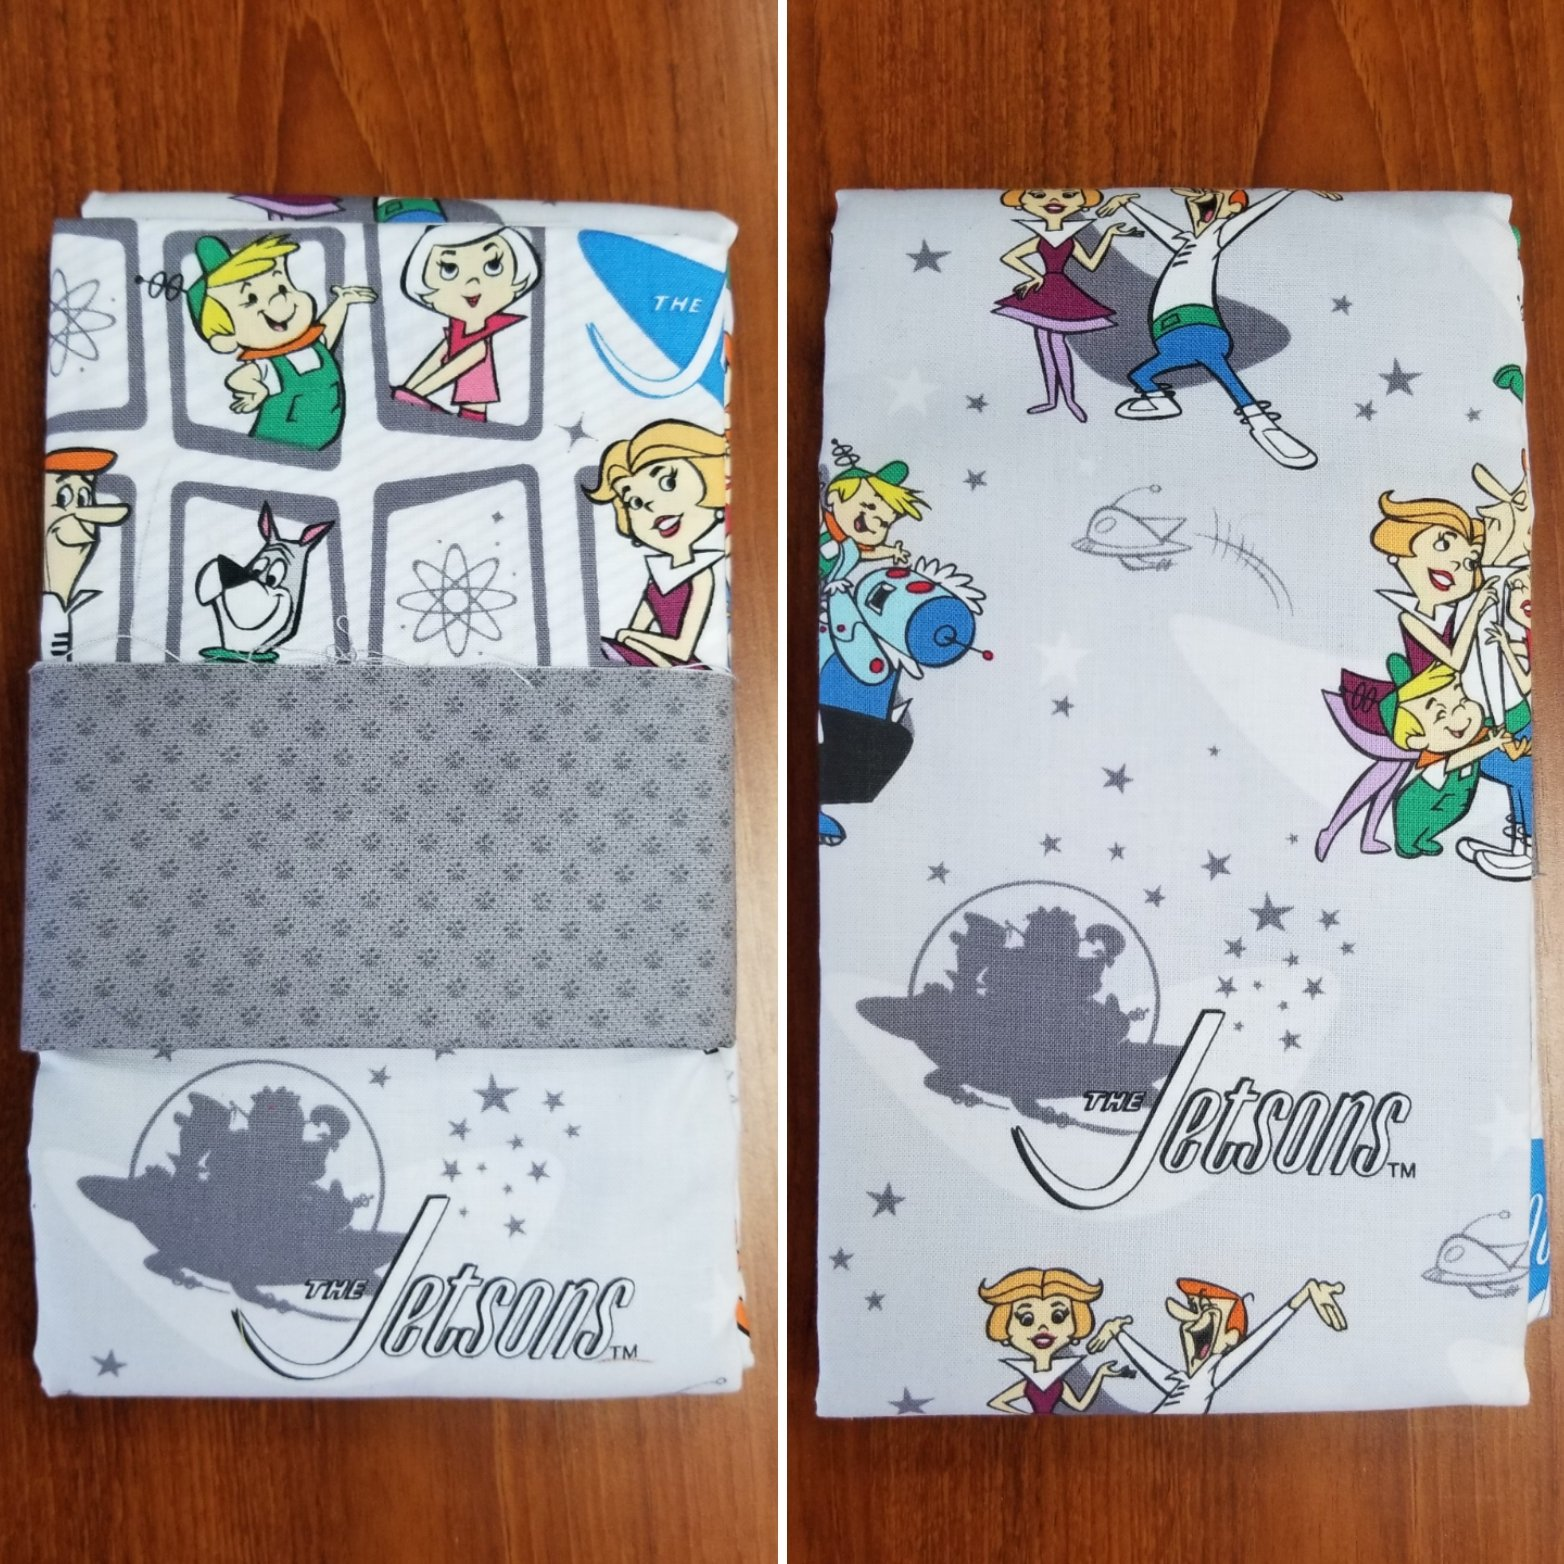 Jetsons Pillowcase Kit (gray)